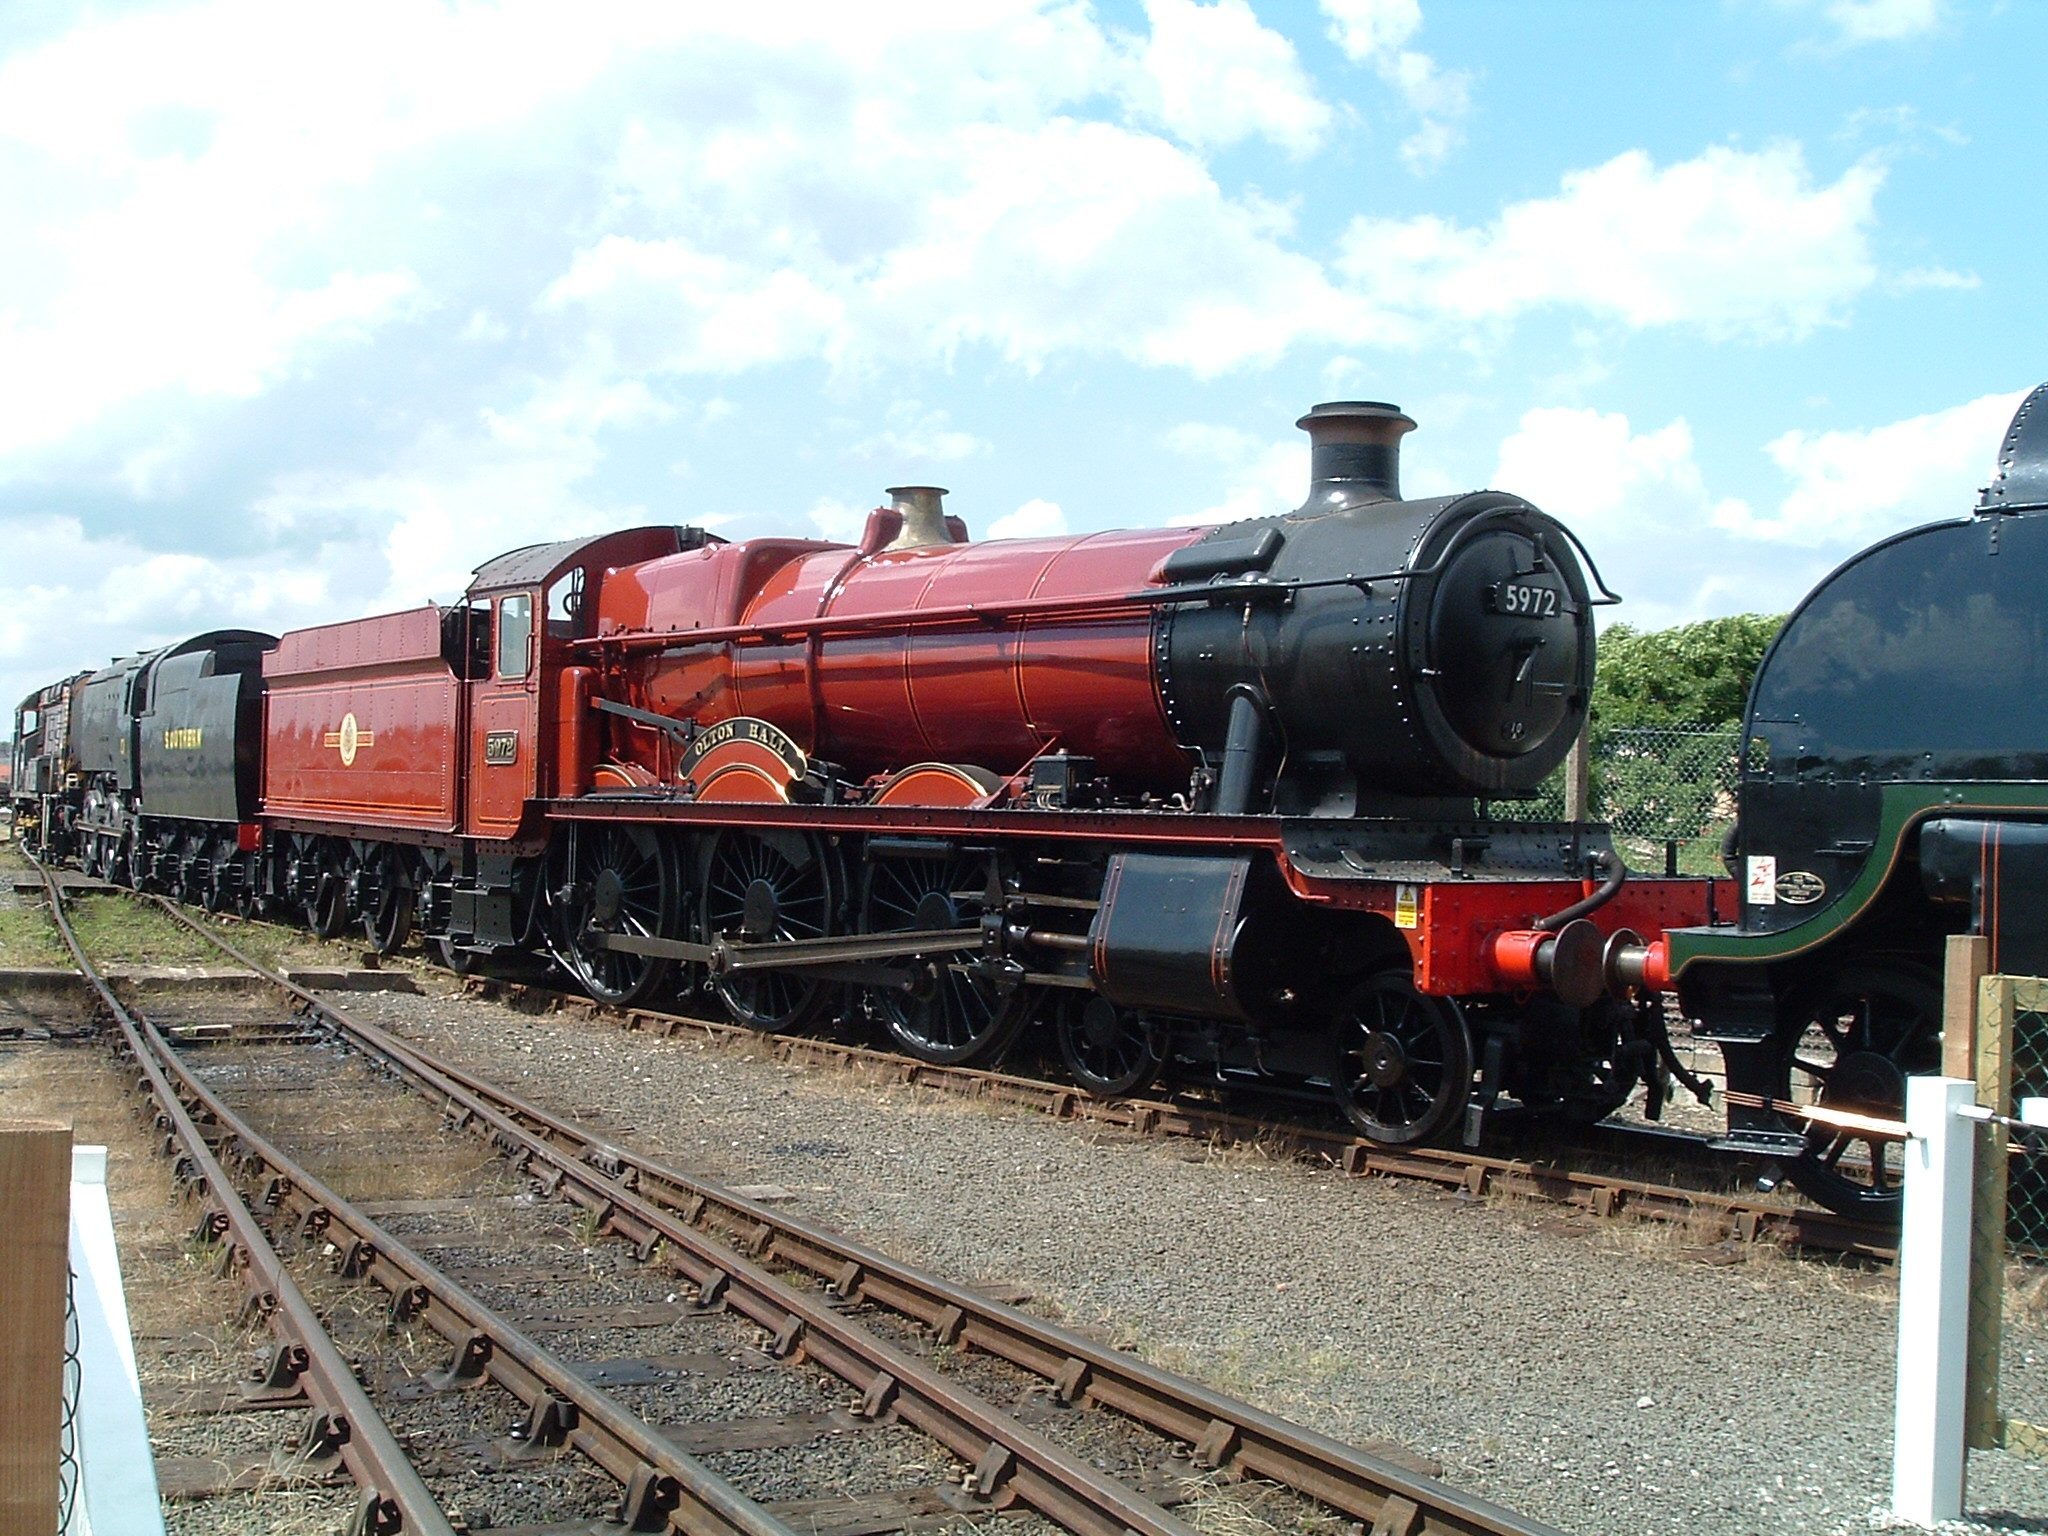 Res: 2048x1536, File:Hogwarts Express at York.jpg